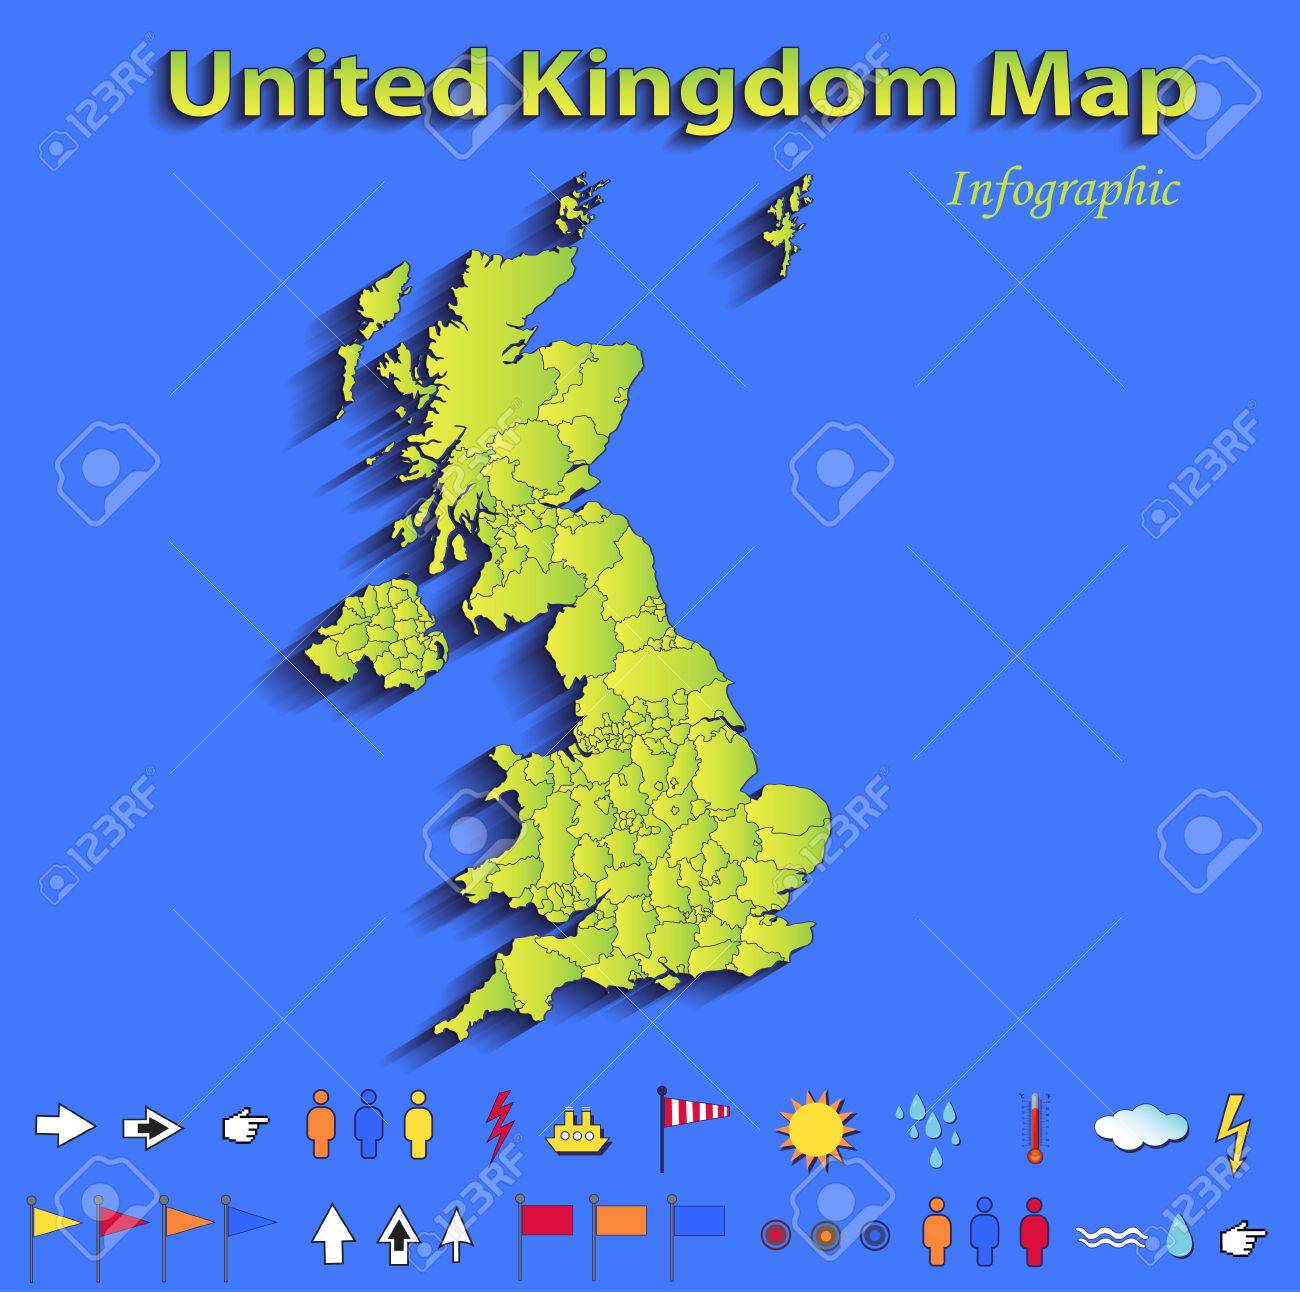 Britain England Map.United Kingdom Great Britain England Map Infographic Political